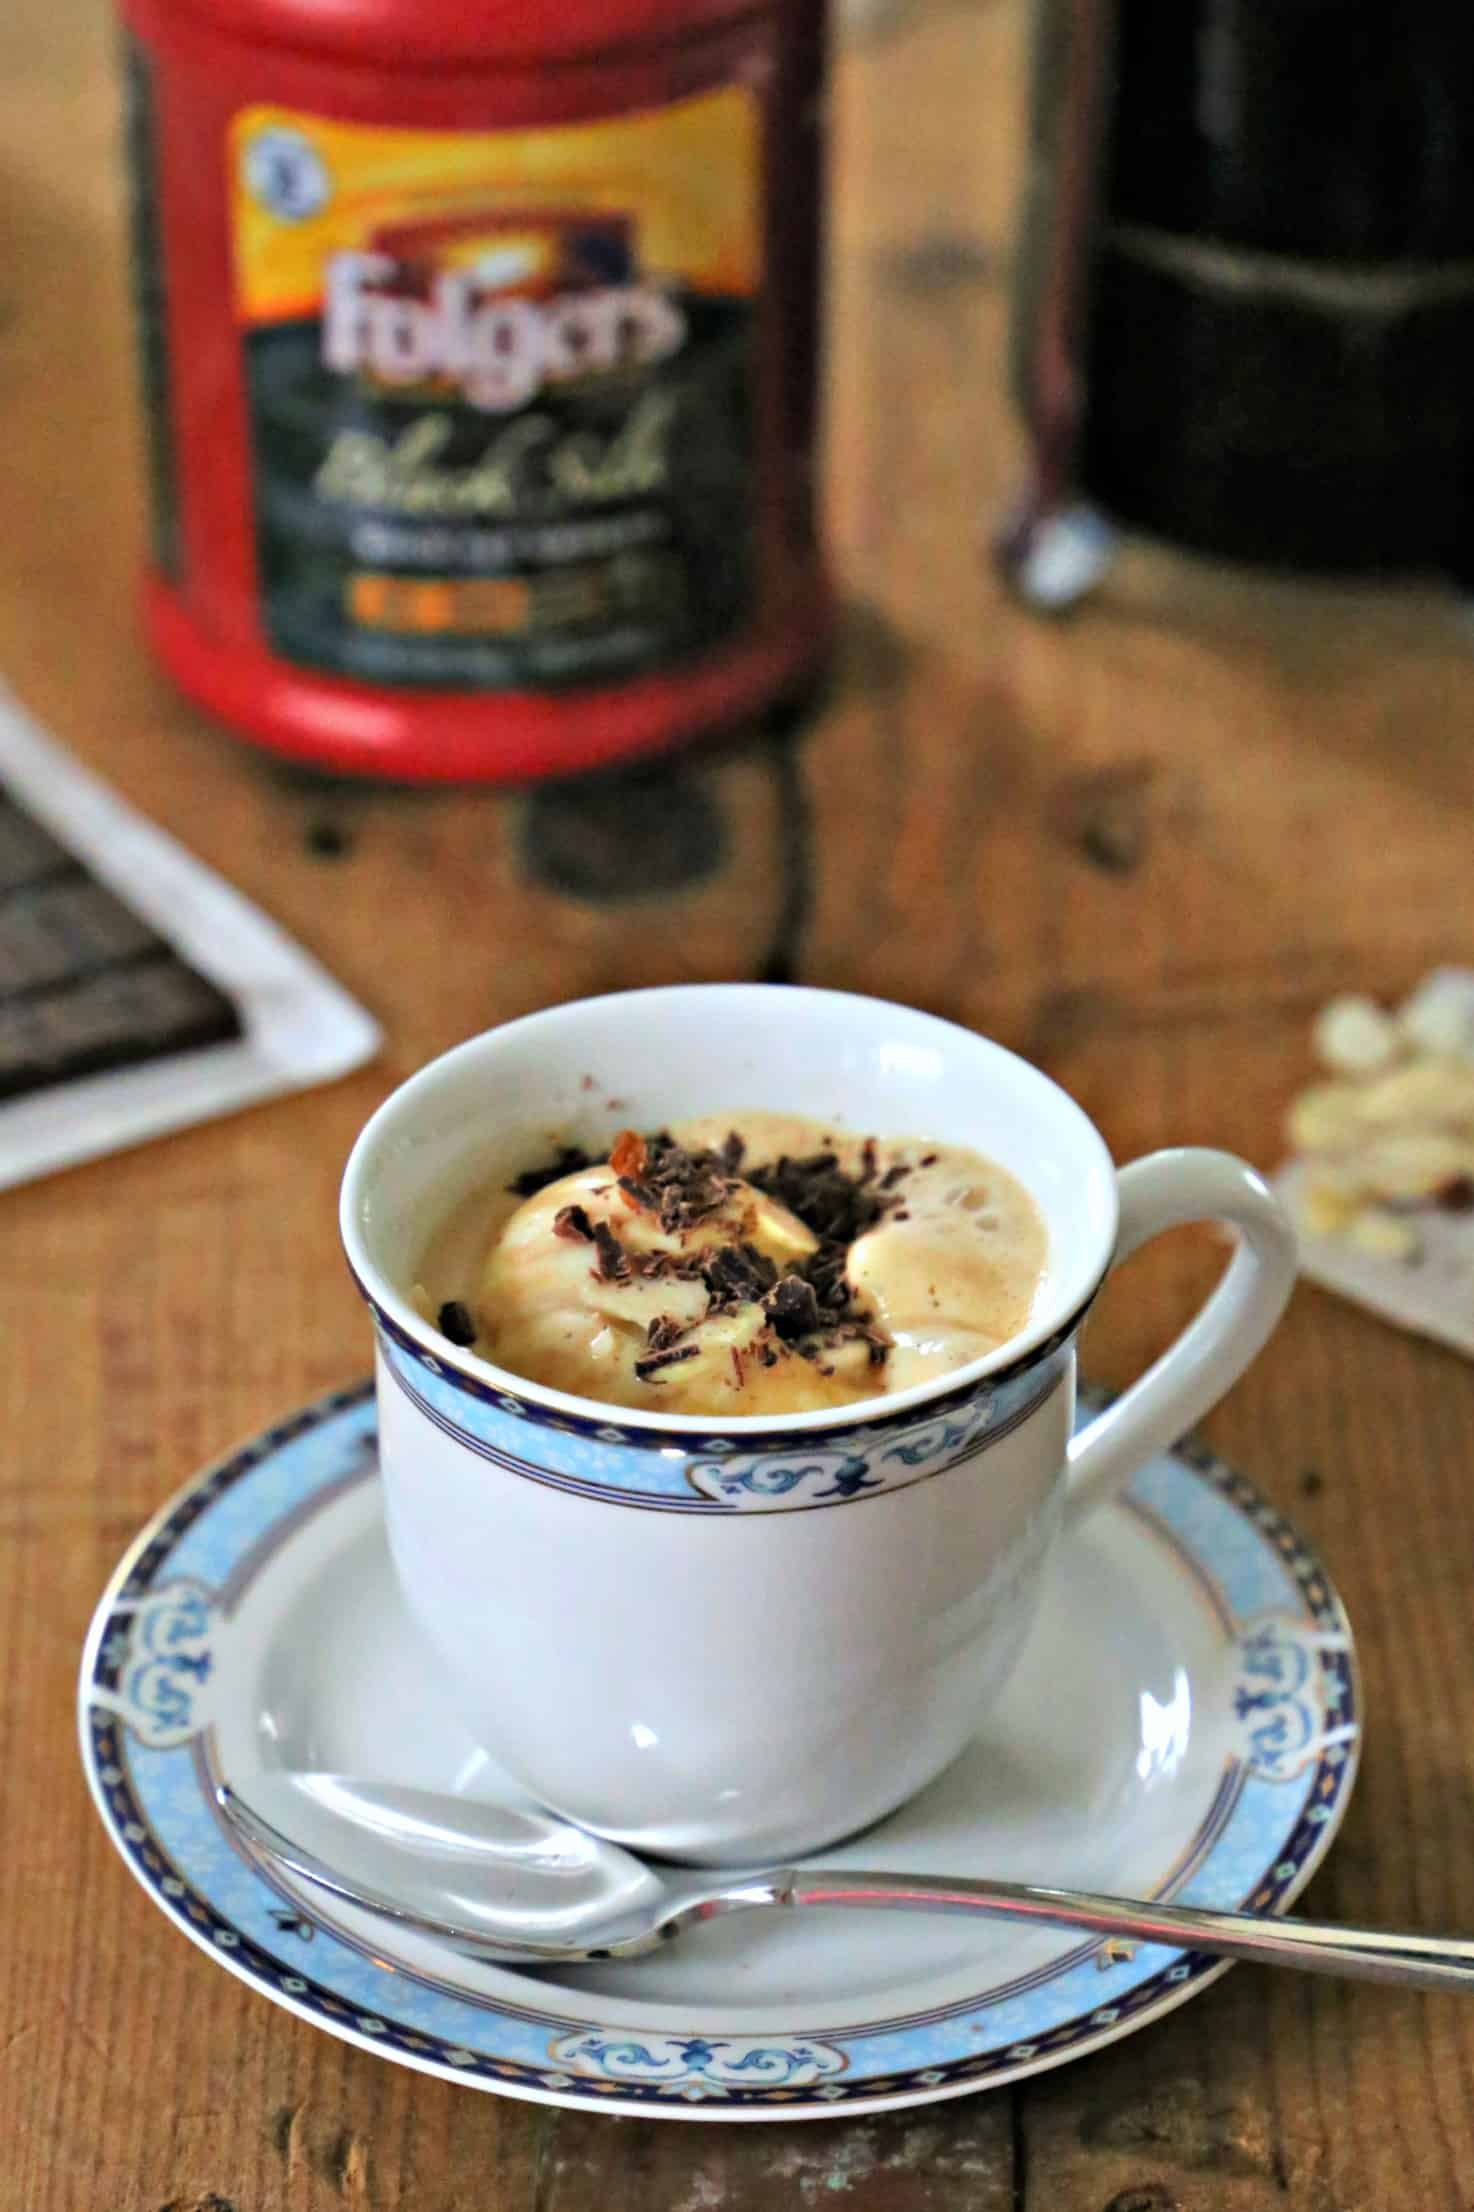 cup of affogato - coffee and ice cream